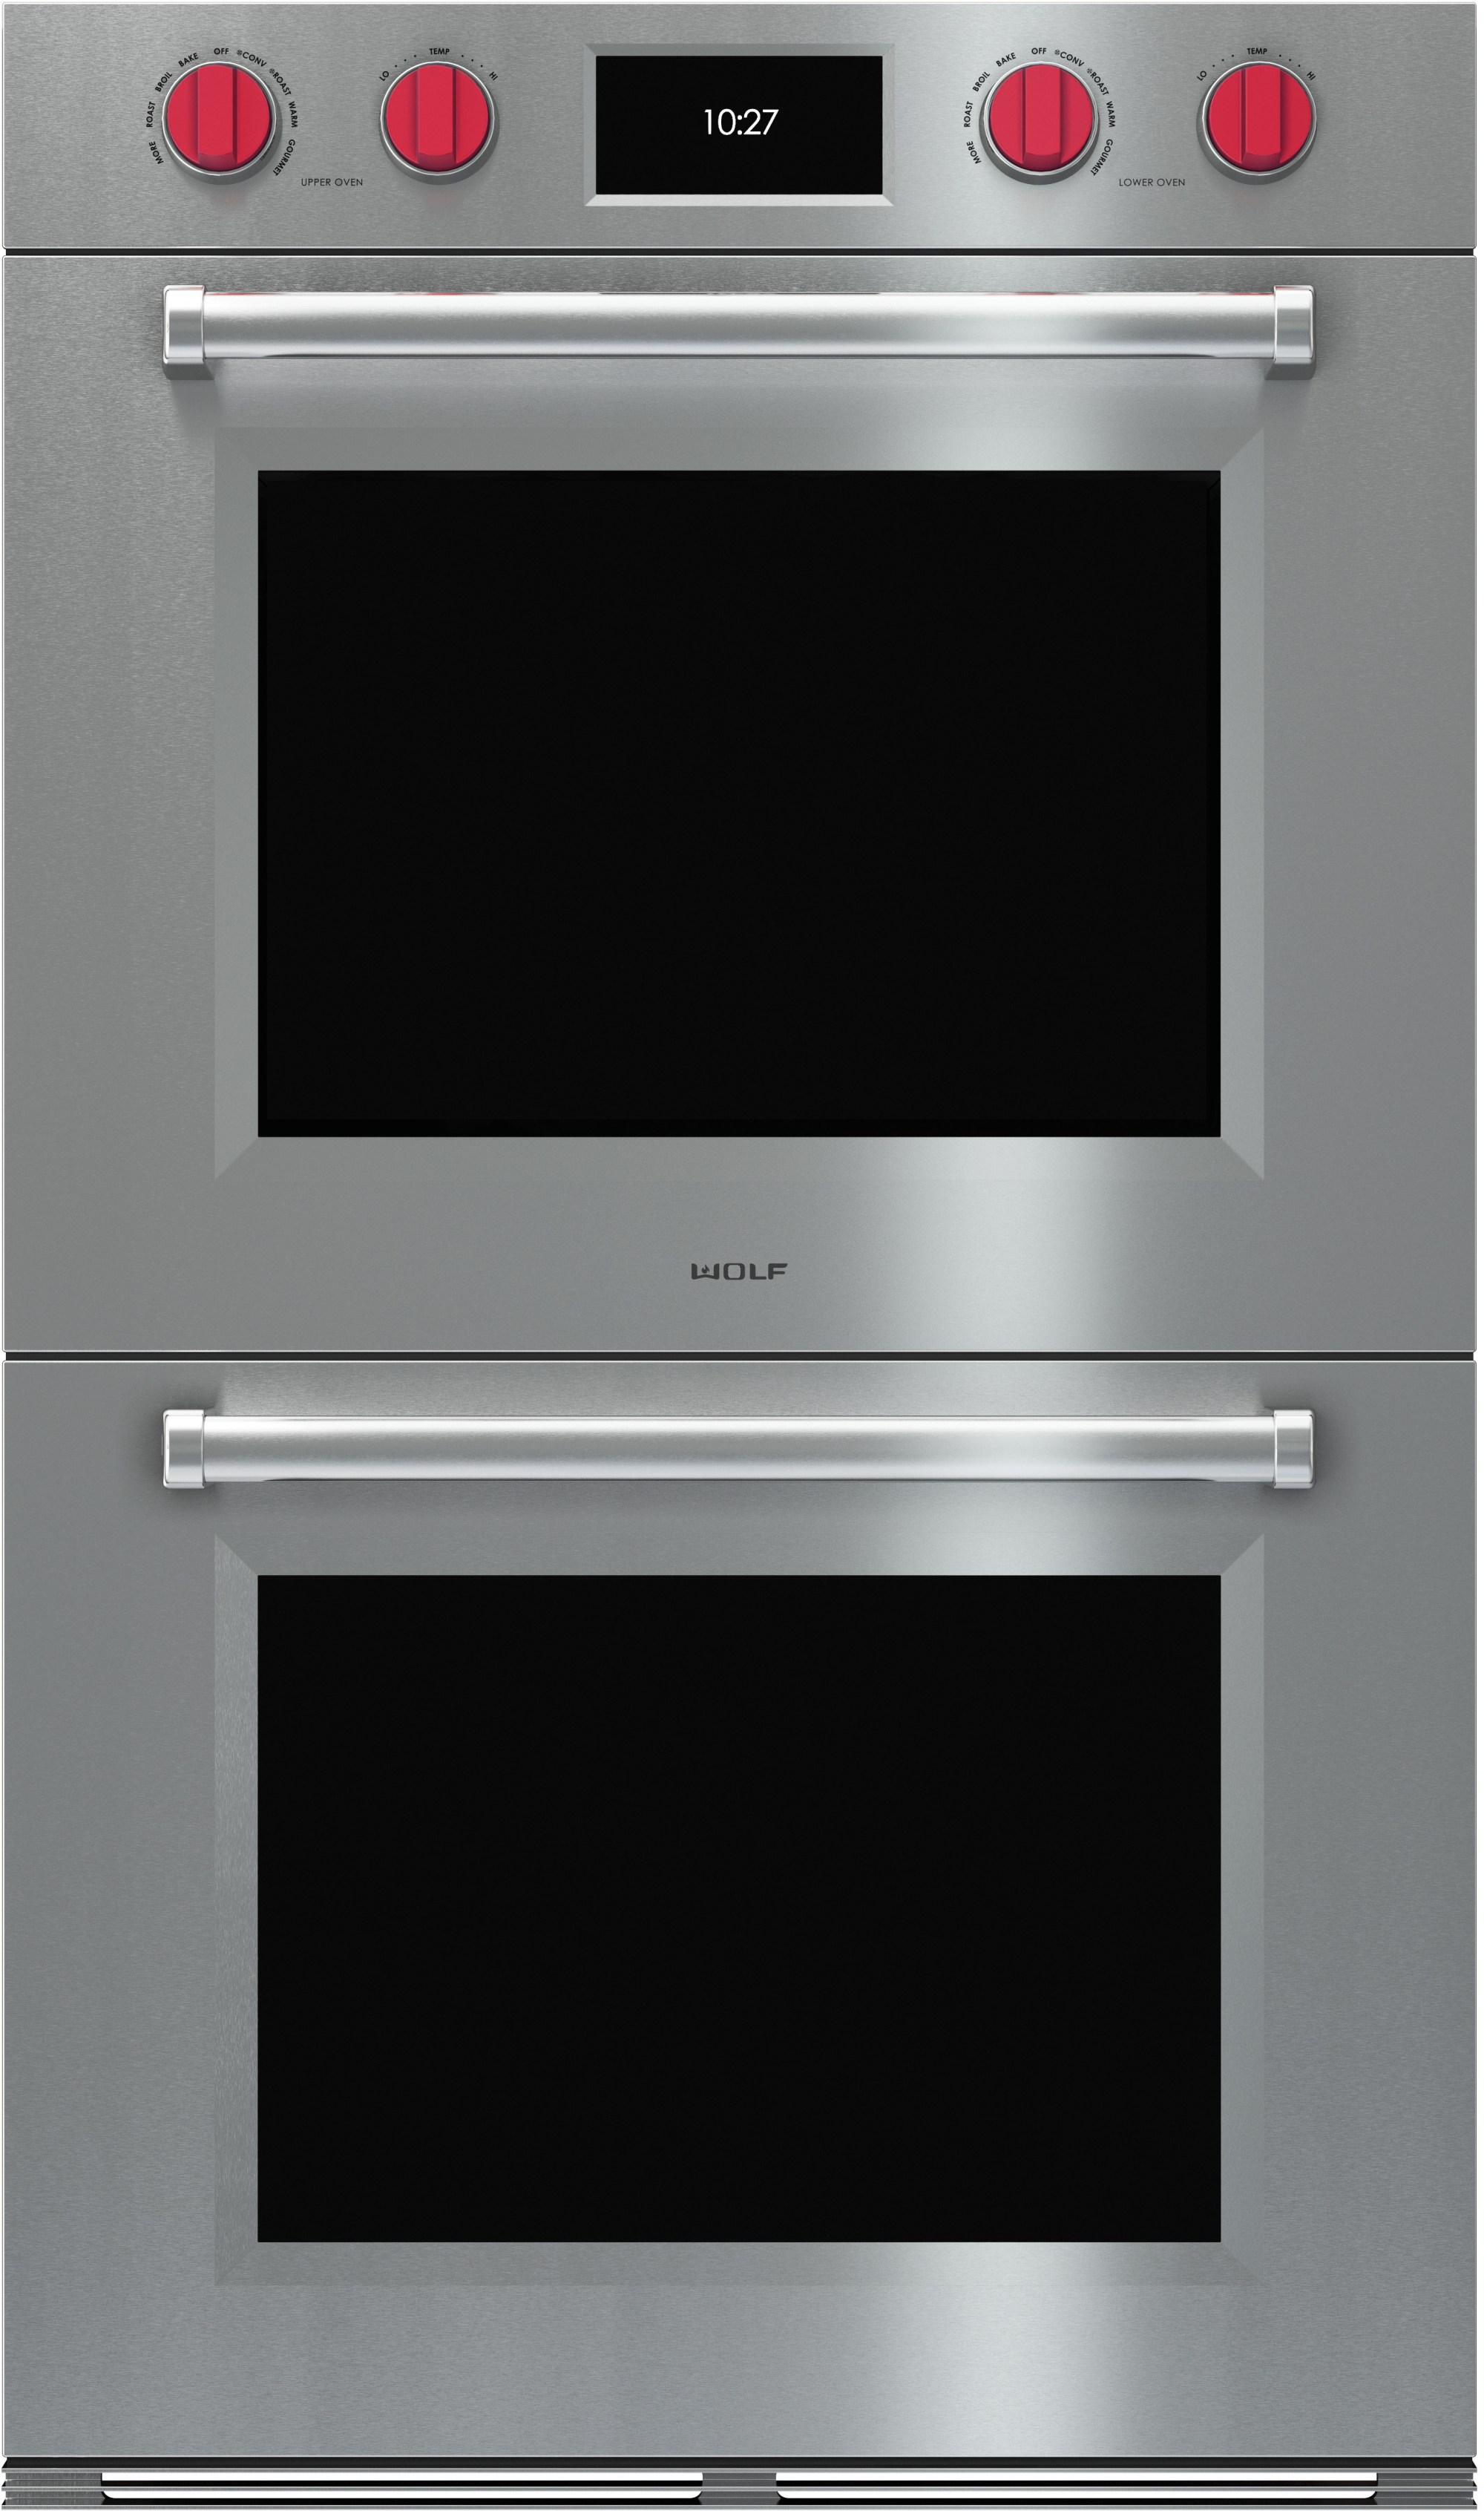 hight resolution of wolf do30pmsph 30 inch double electric wall oven with 5 1 cu ft dual verticross convection ovens 10 cooking modes self clean gourmet mode